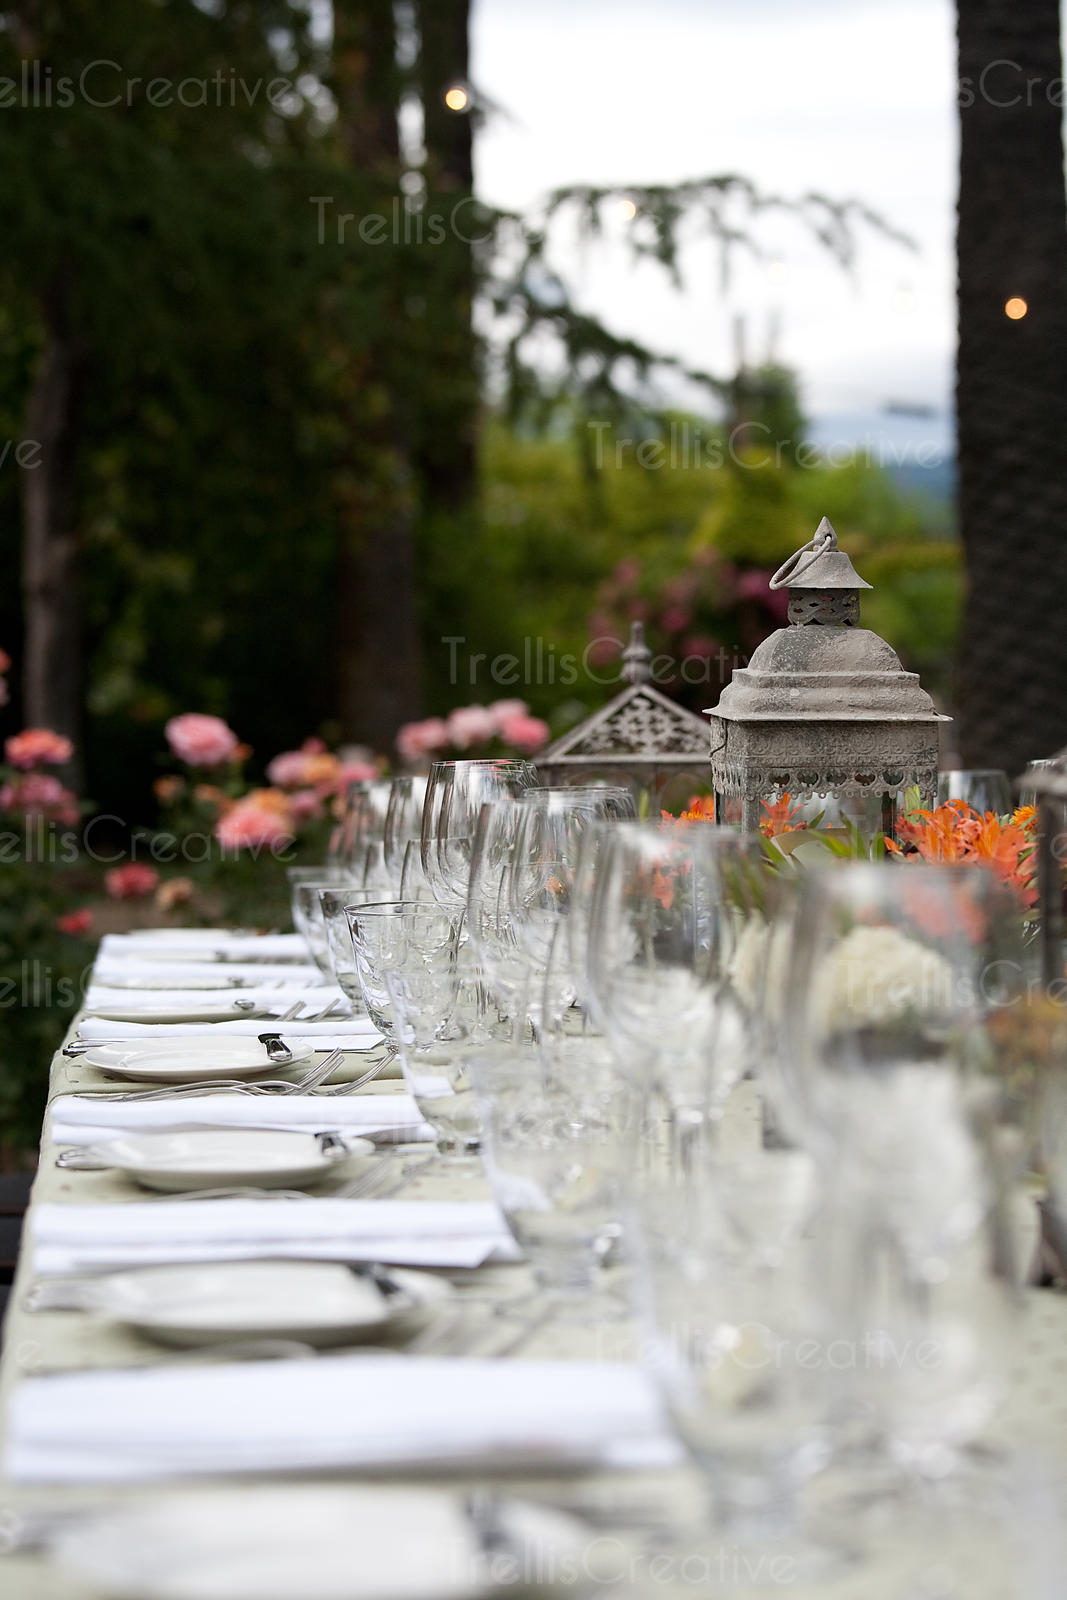 Place settings on elegant dining table in garden